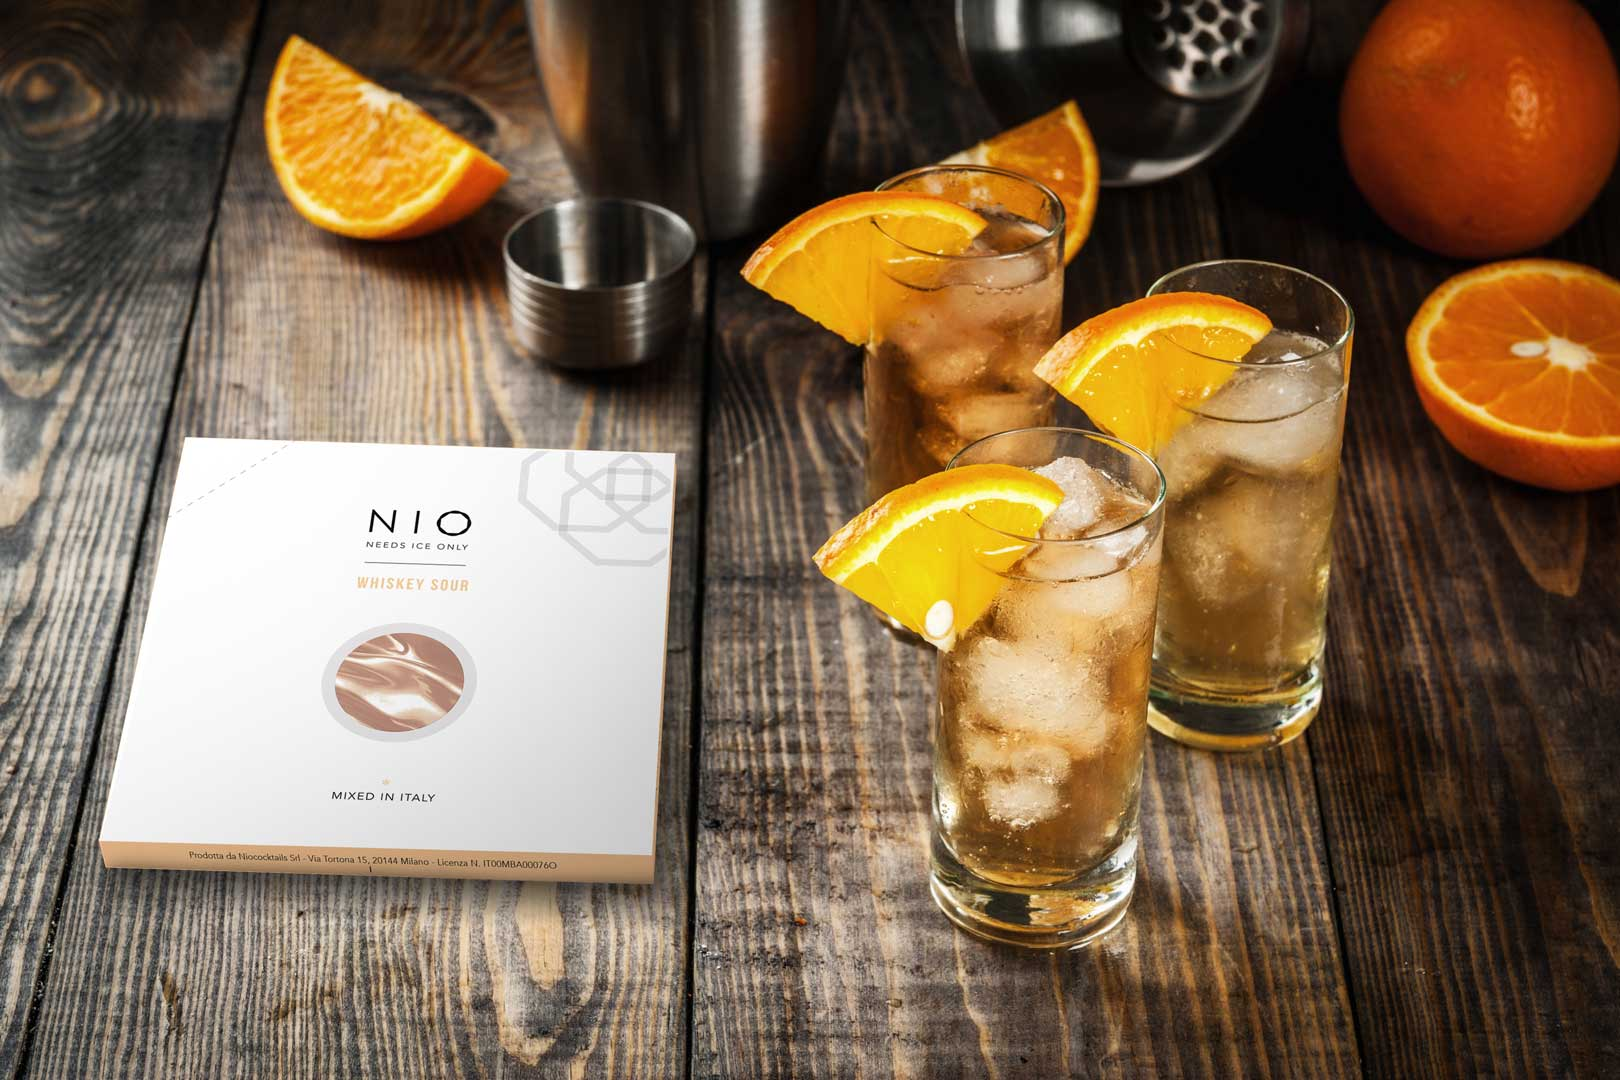 NIO – Needs Ice Only